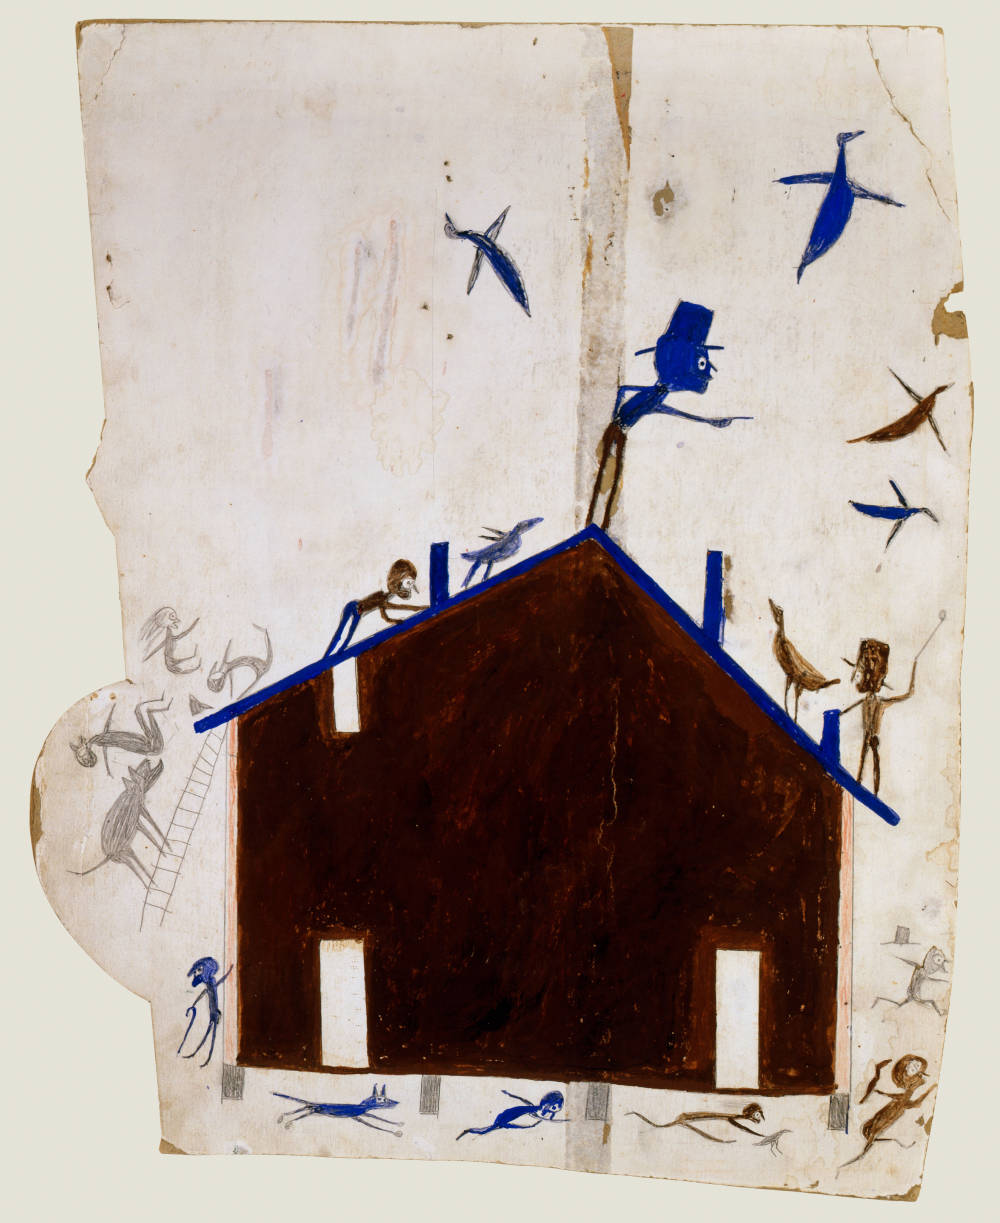 Brown House with Multiple Figures and Birds